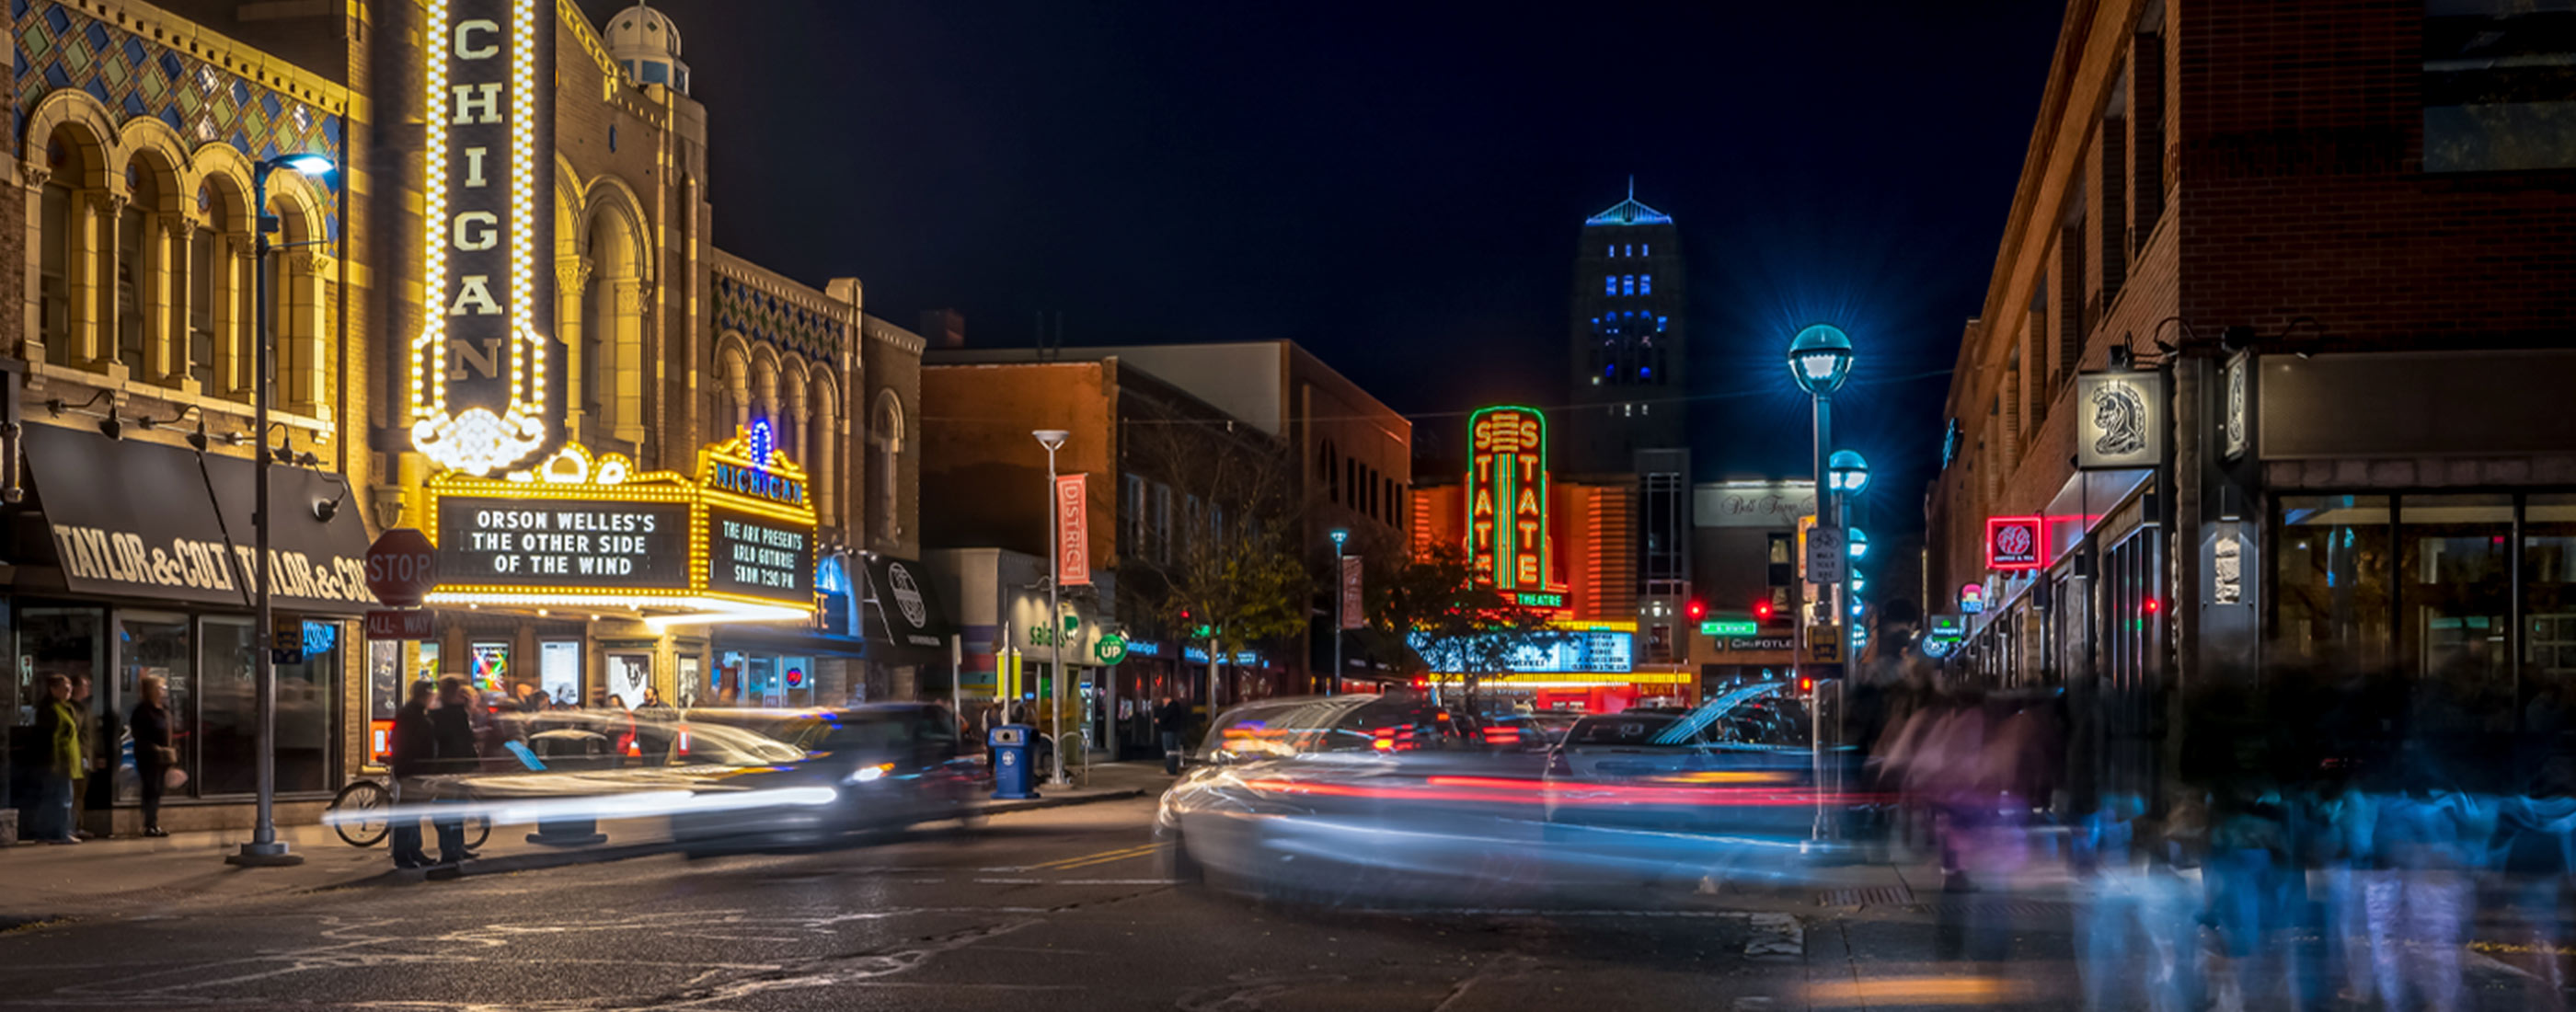 Ann Arbor's streetlights keep the city bright at night thanks to data-driven analysis from OHM Advisors.